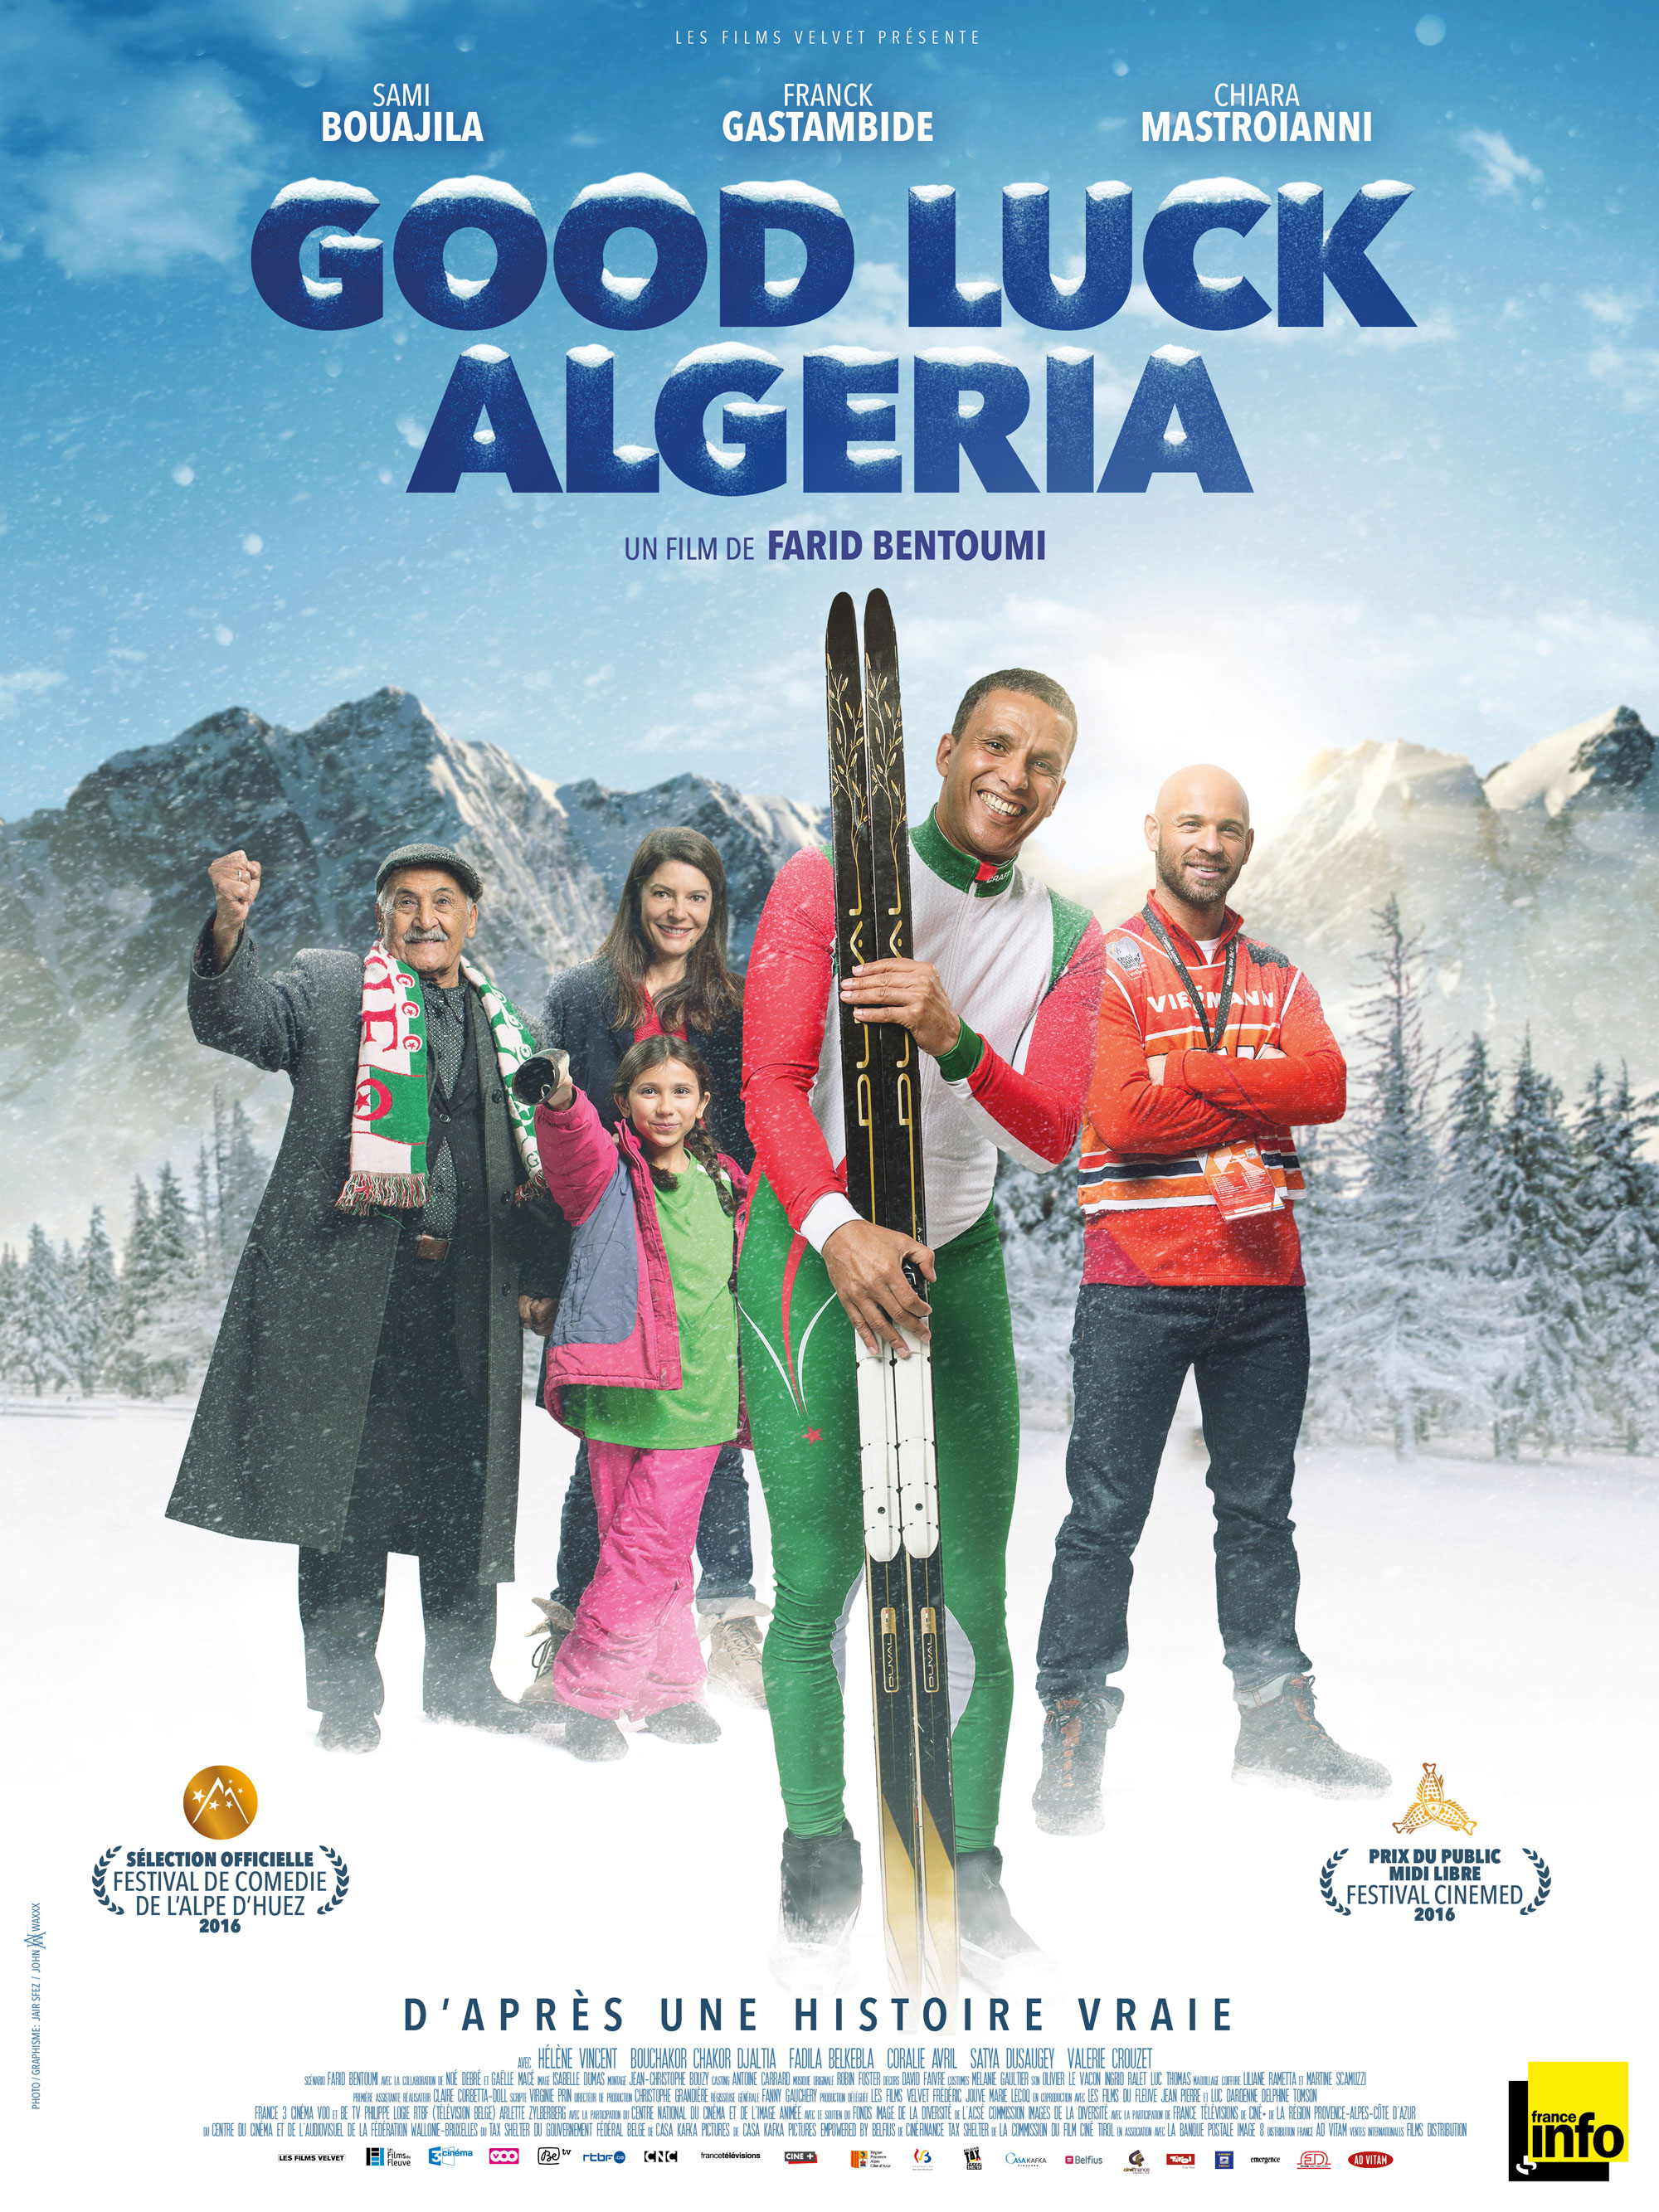 Good luck Algeria - Affiche